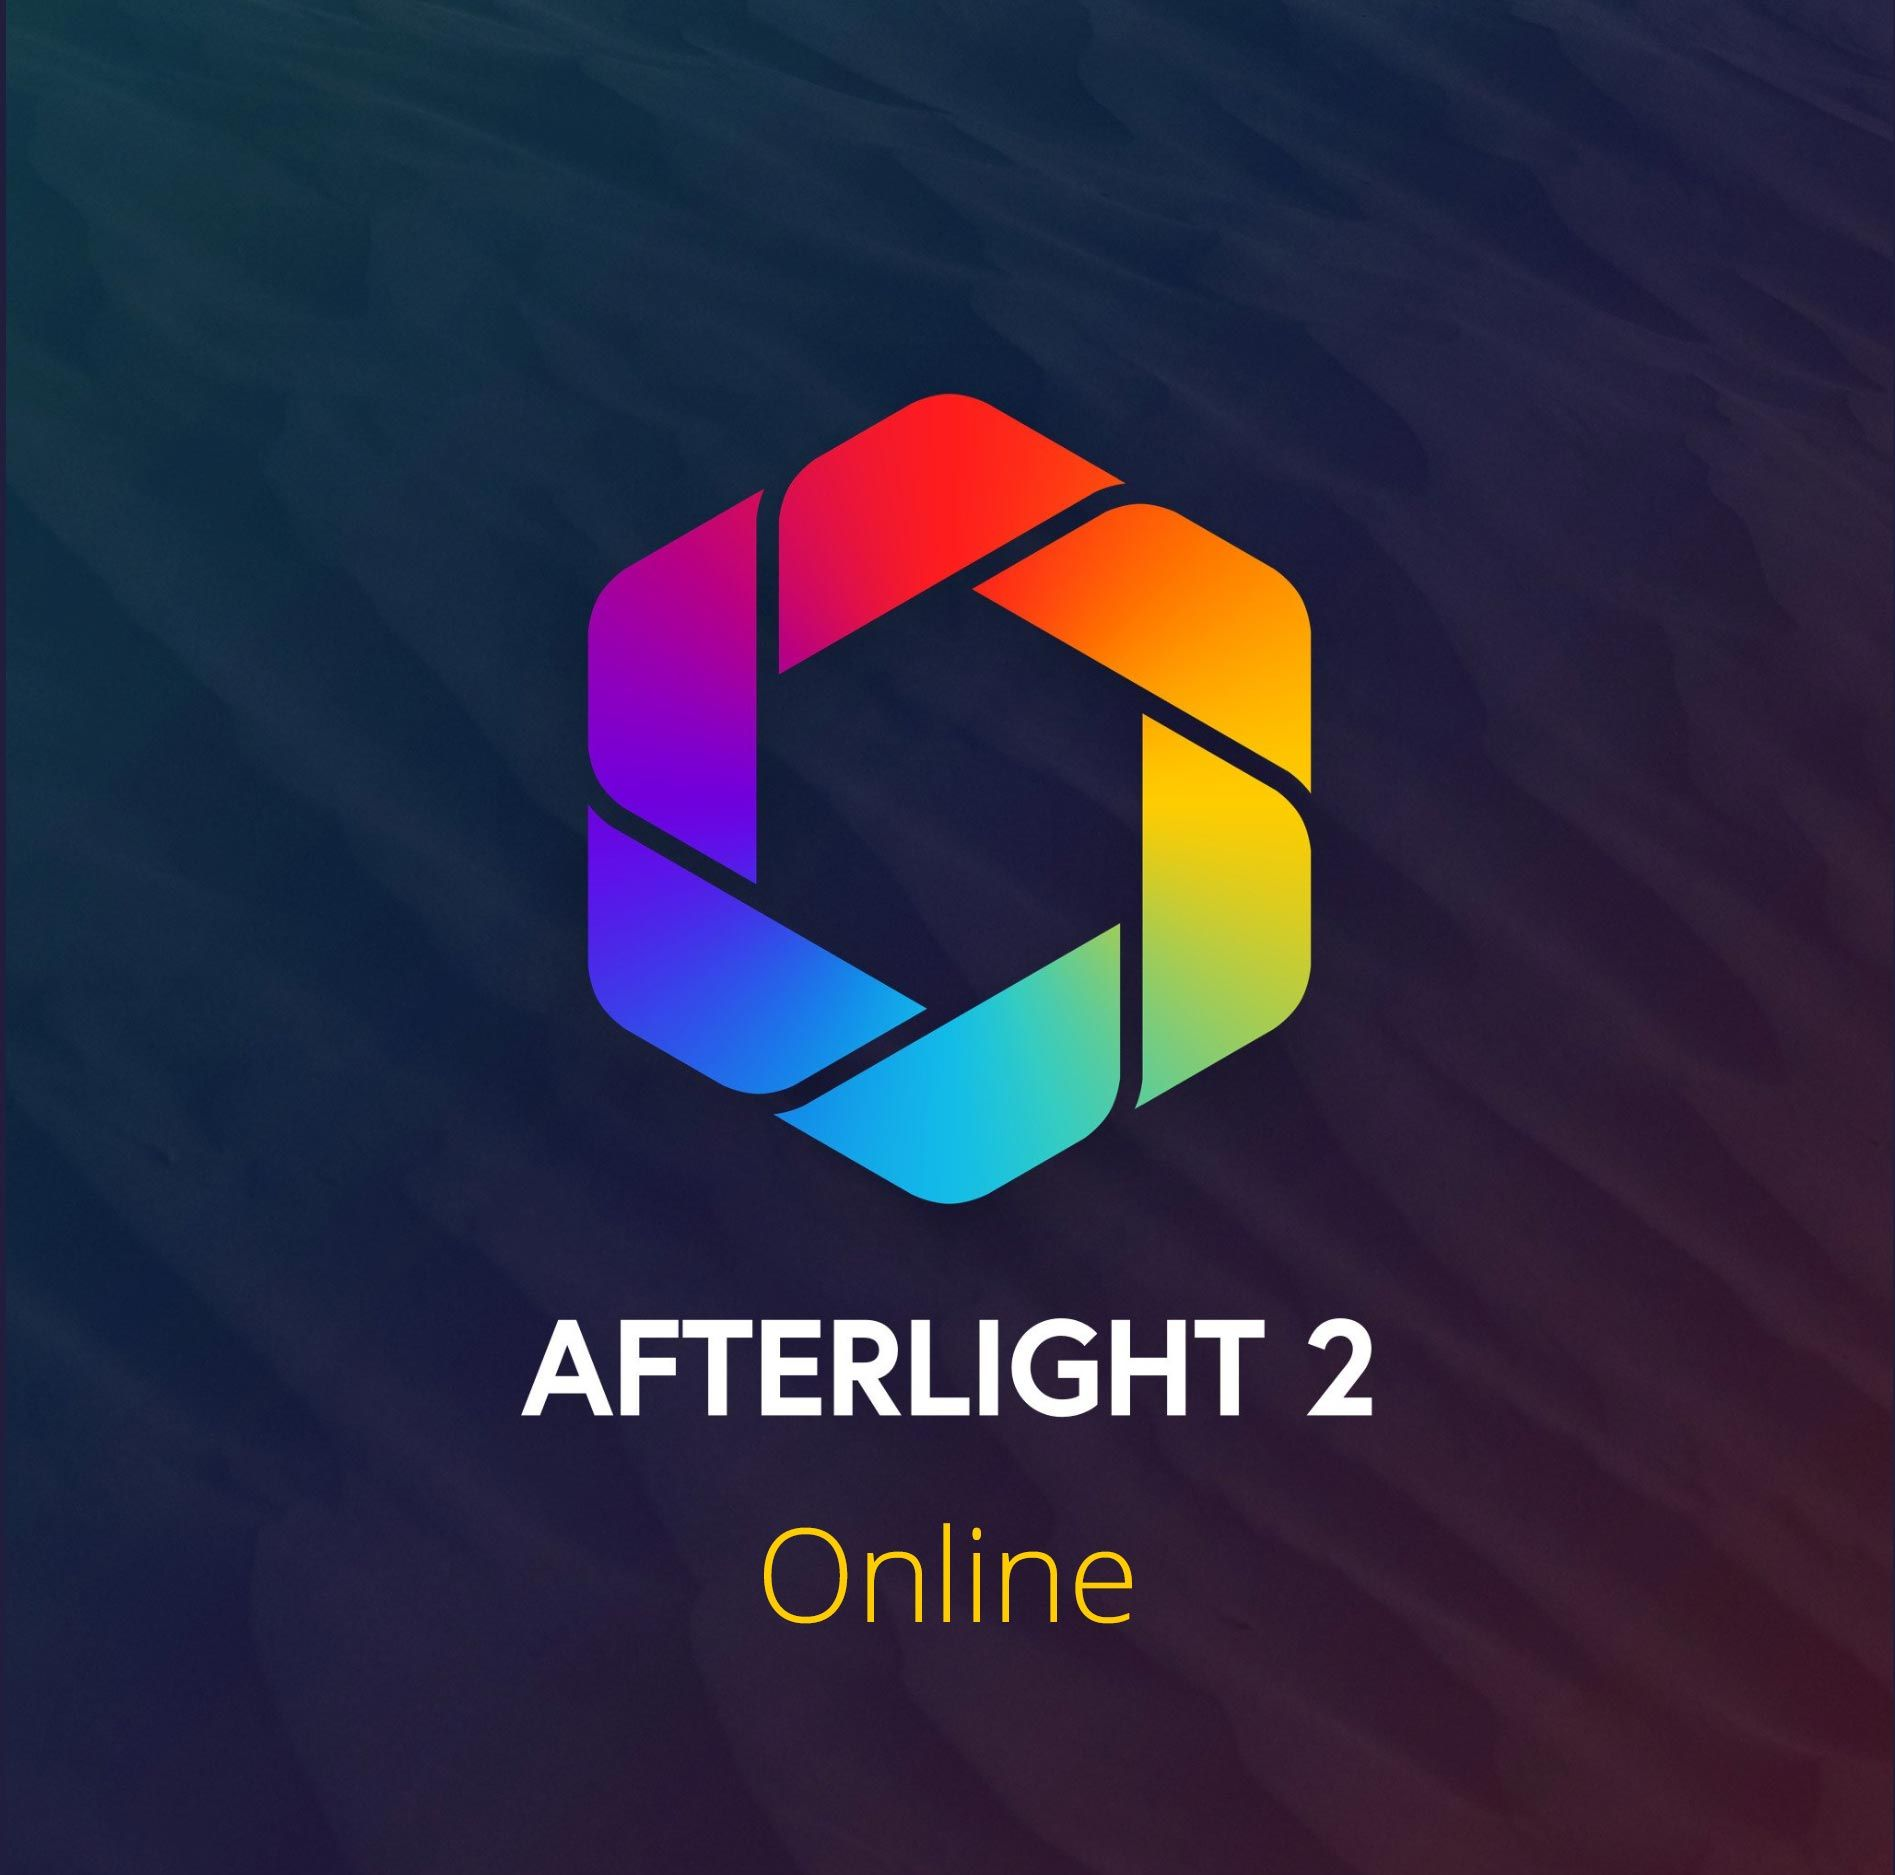 Afterlight 2 Online is yet another awesome photo editor with